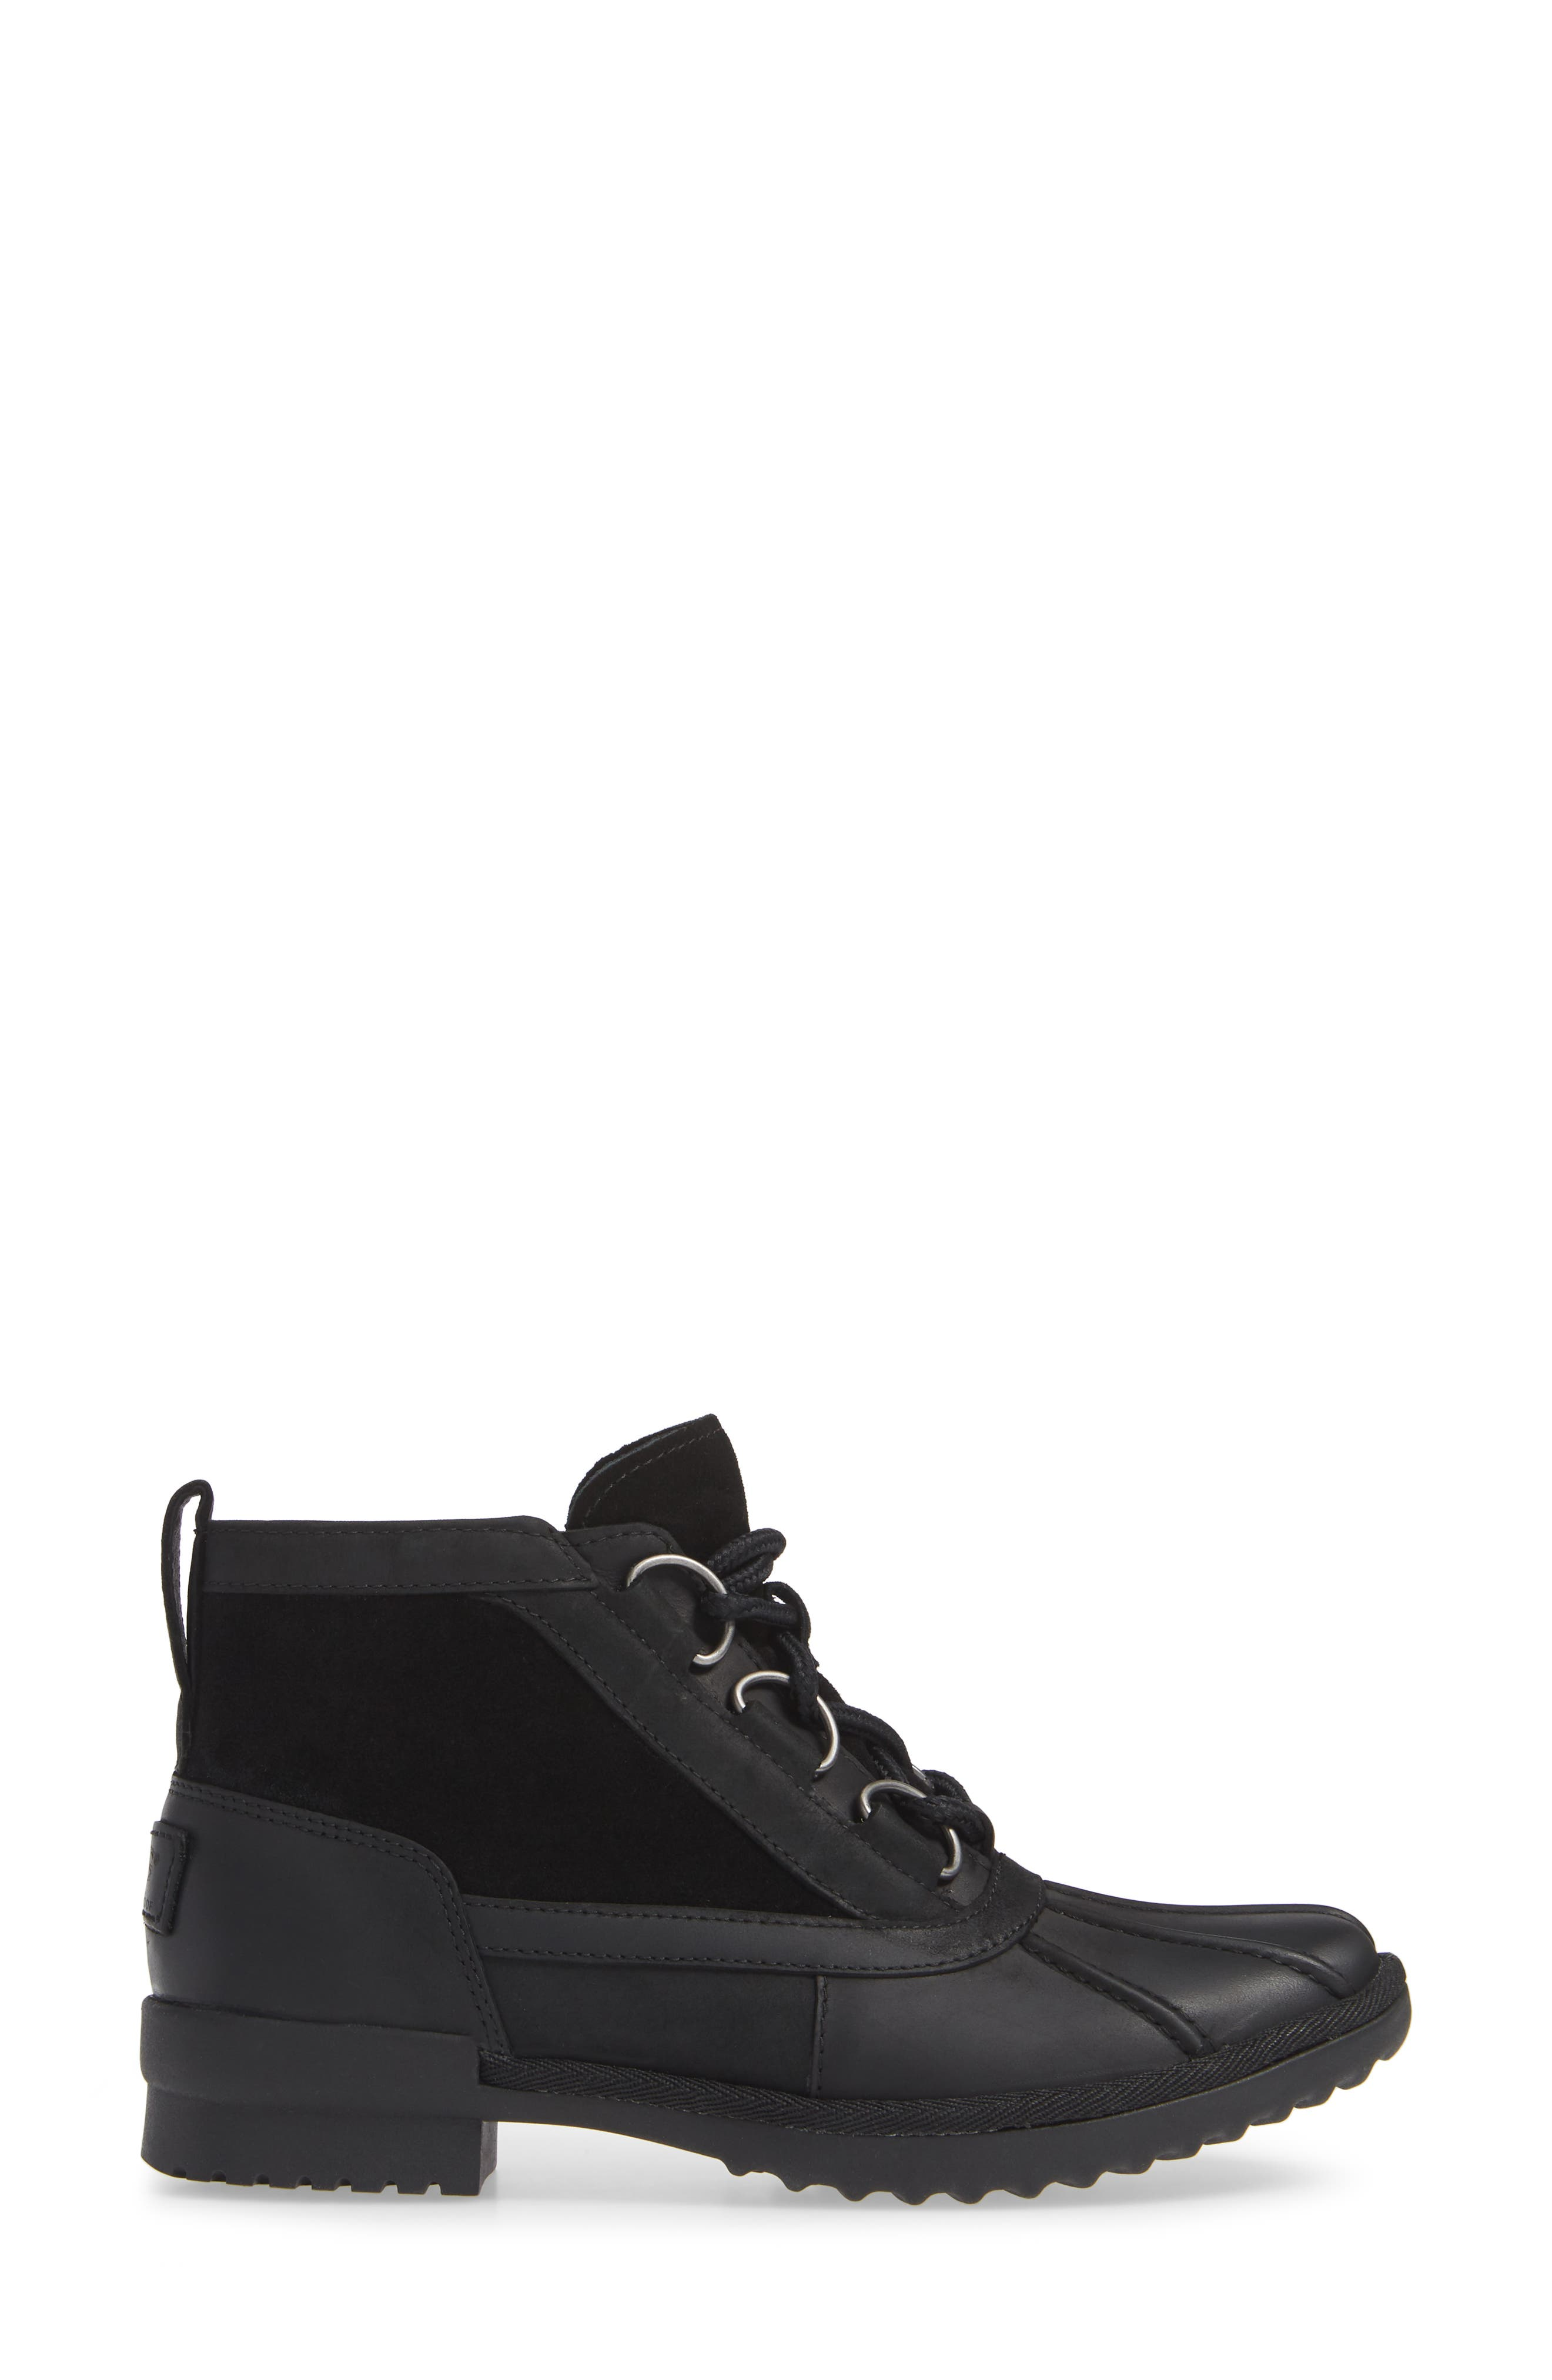 Heather Waterproof Lace-Up Bootie,                             Alternate thumbnail 3, color,                             BLACK LEATHER